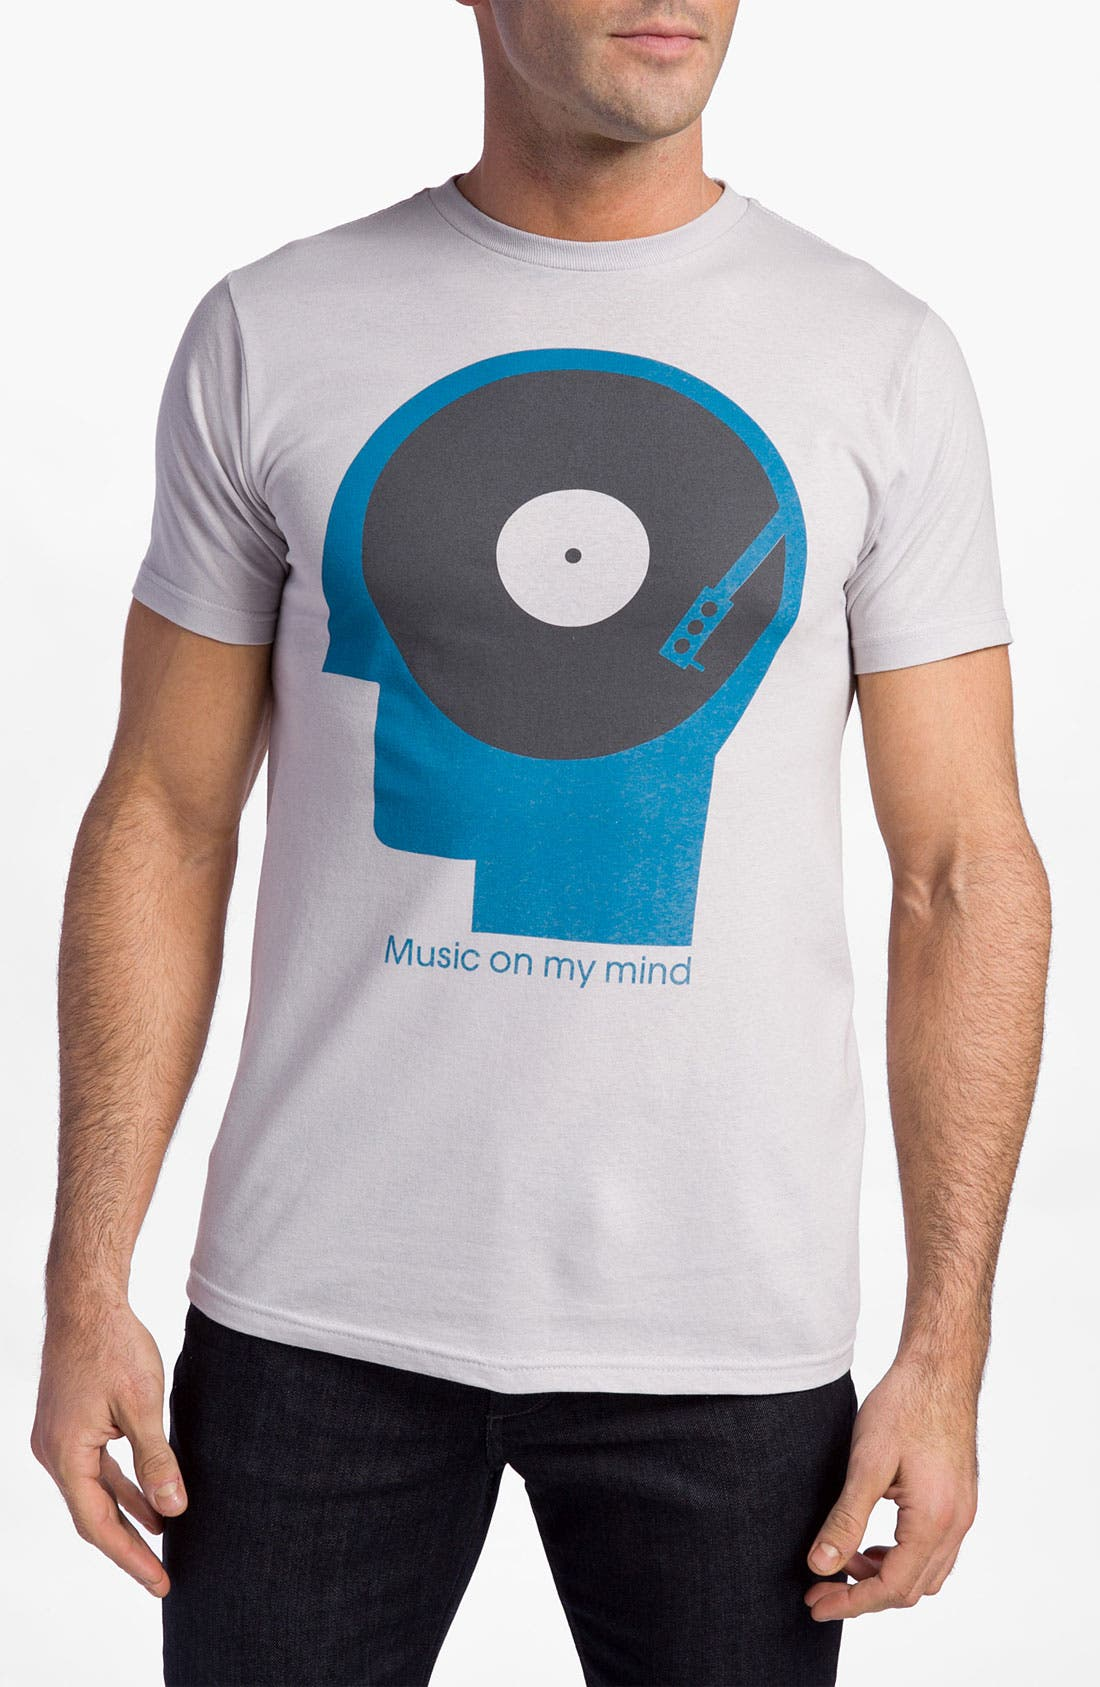 Alternate Image 1 Selected - PalmerCash 'Music on My Mind' T-Shirt